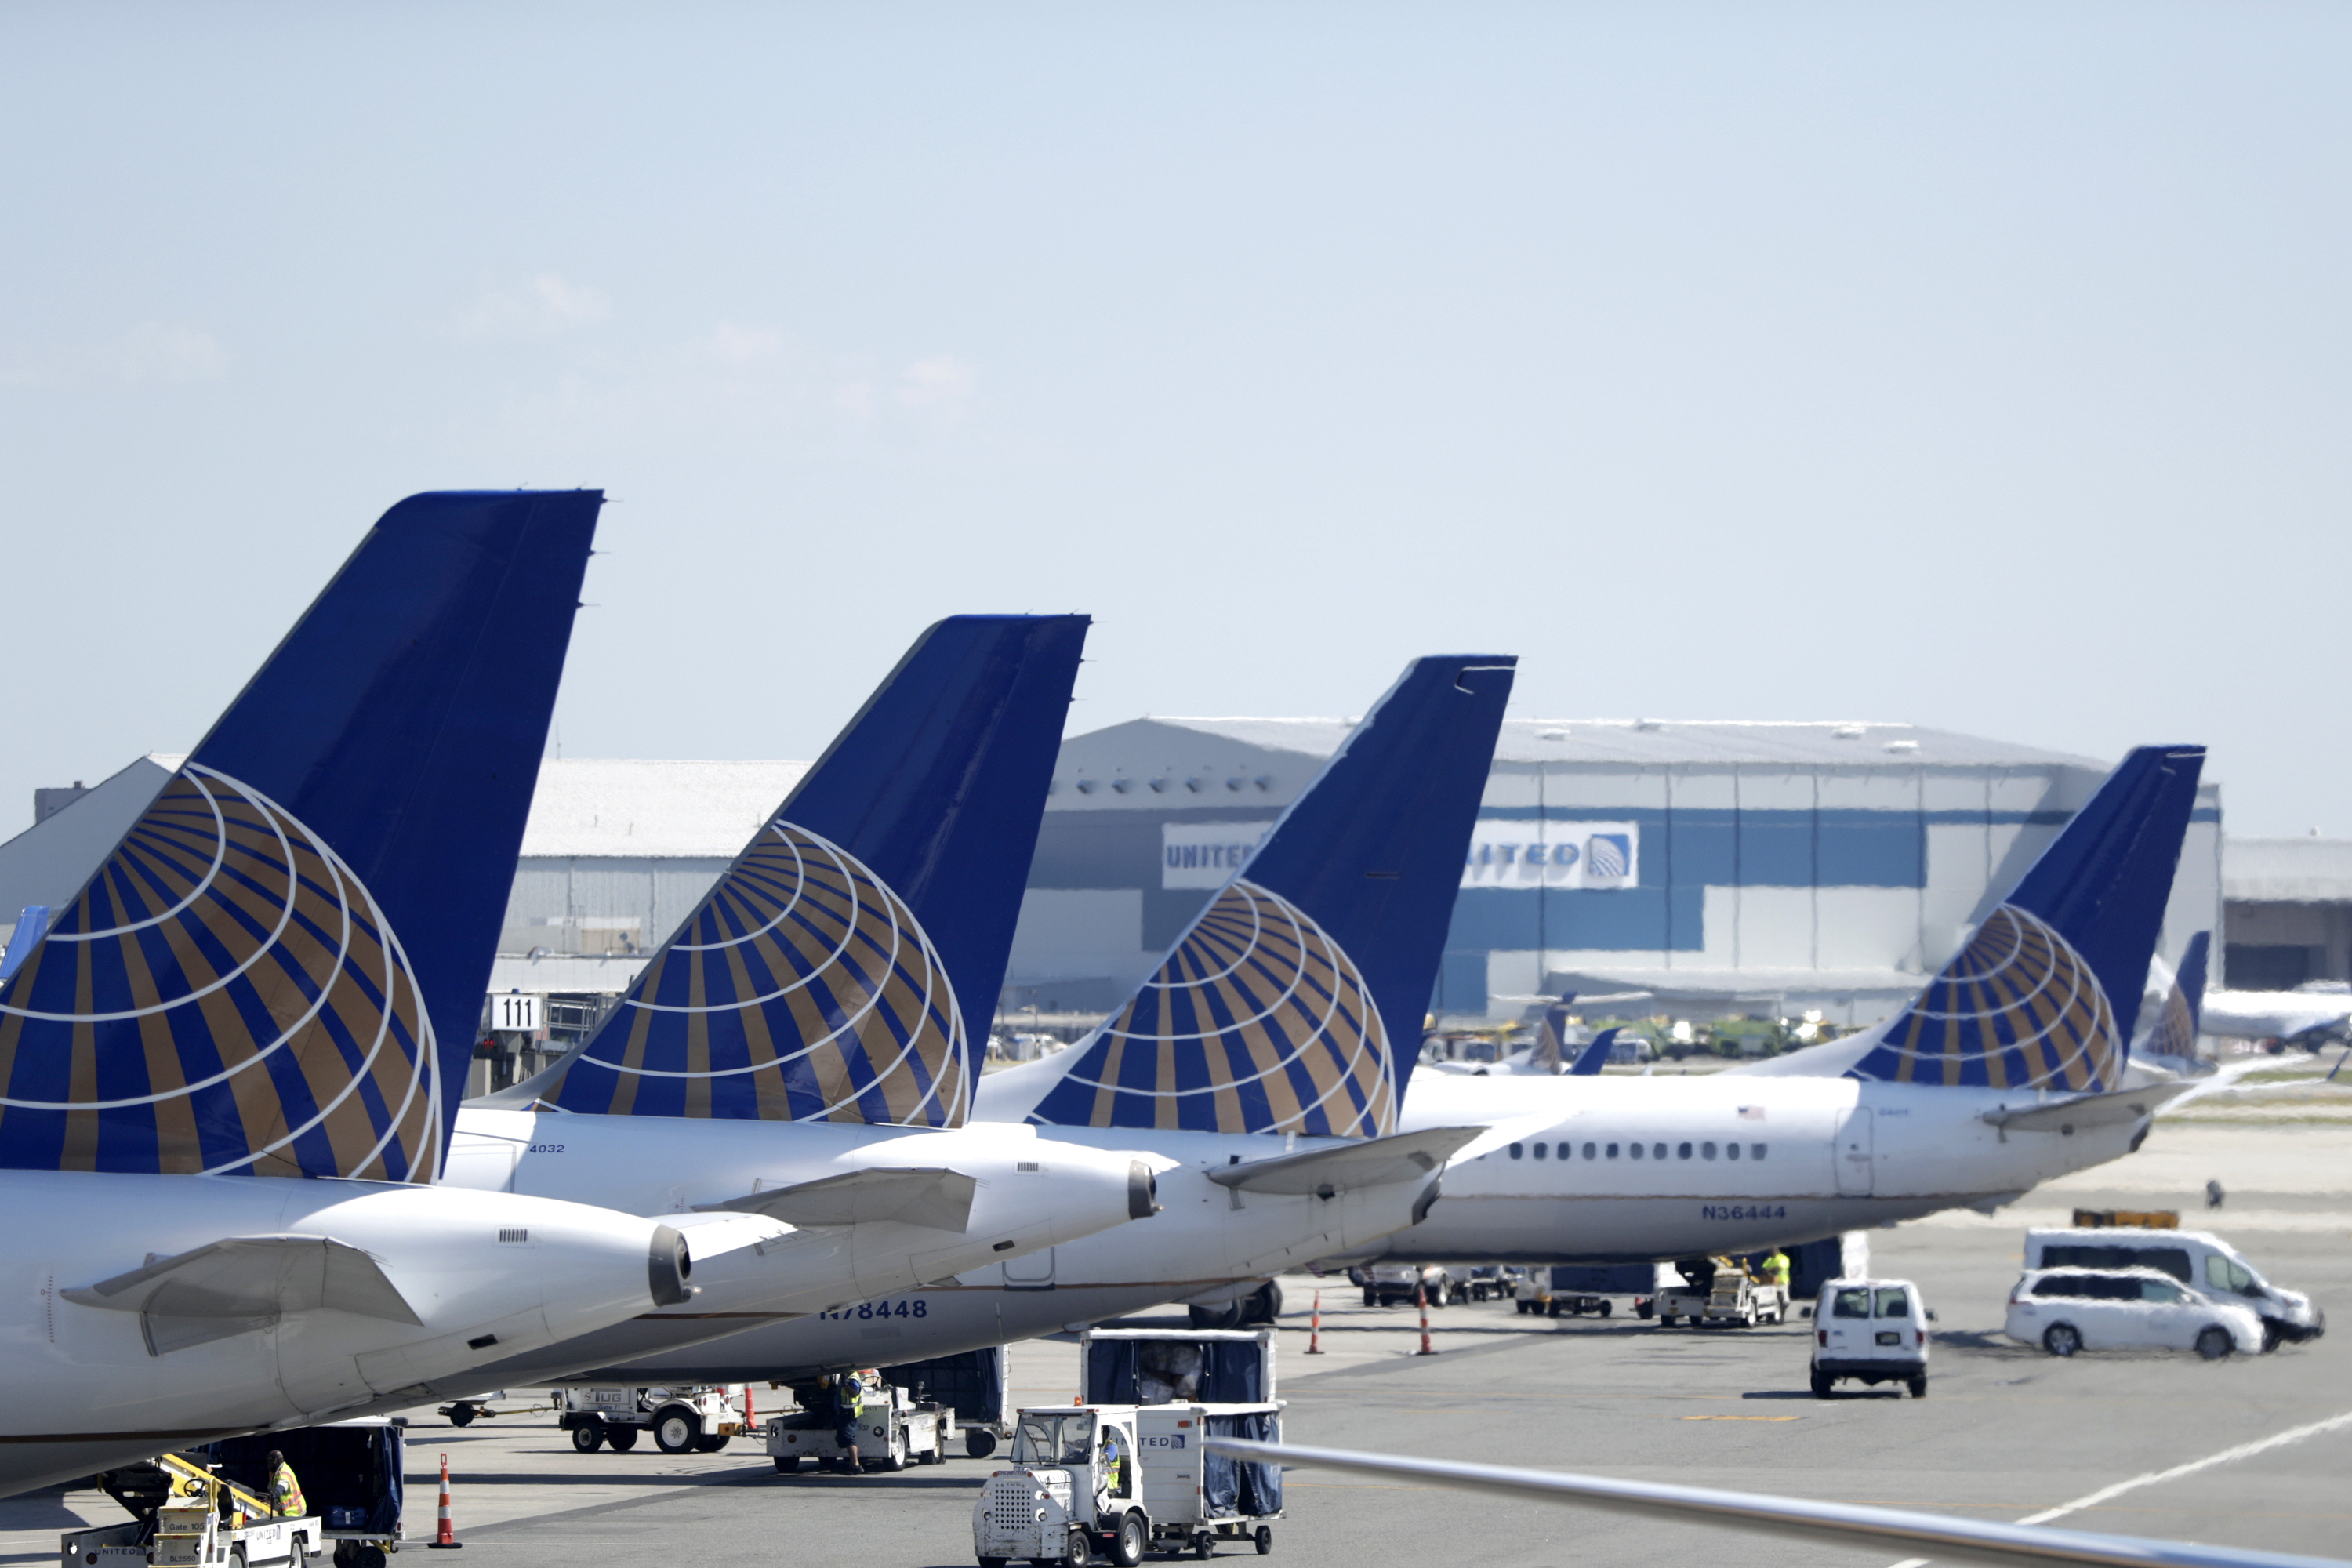 In this July 18, 2018, file photo, United Airlines commercial jets sit at a gate at Terminal C of Newark Liberty International Airport in Newark, N.J.